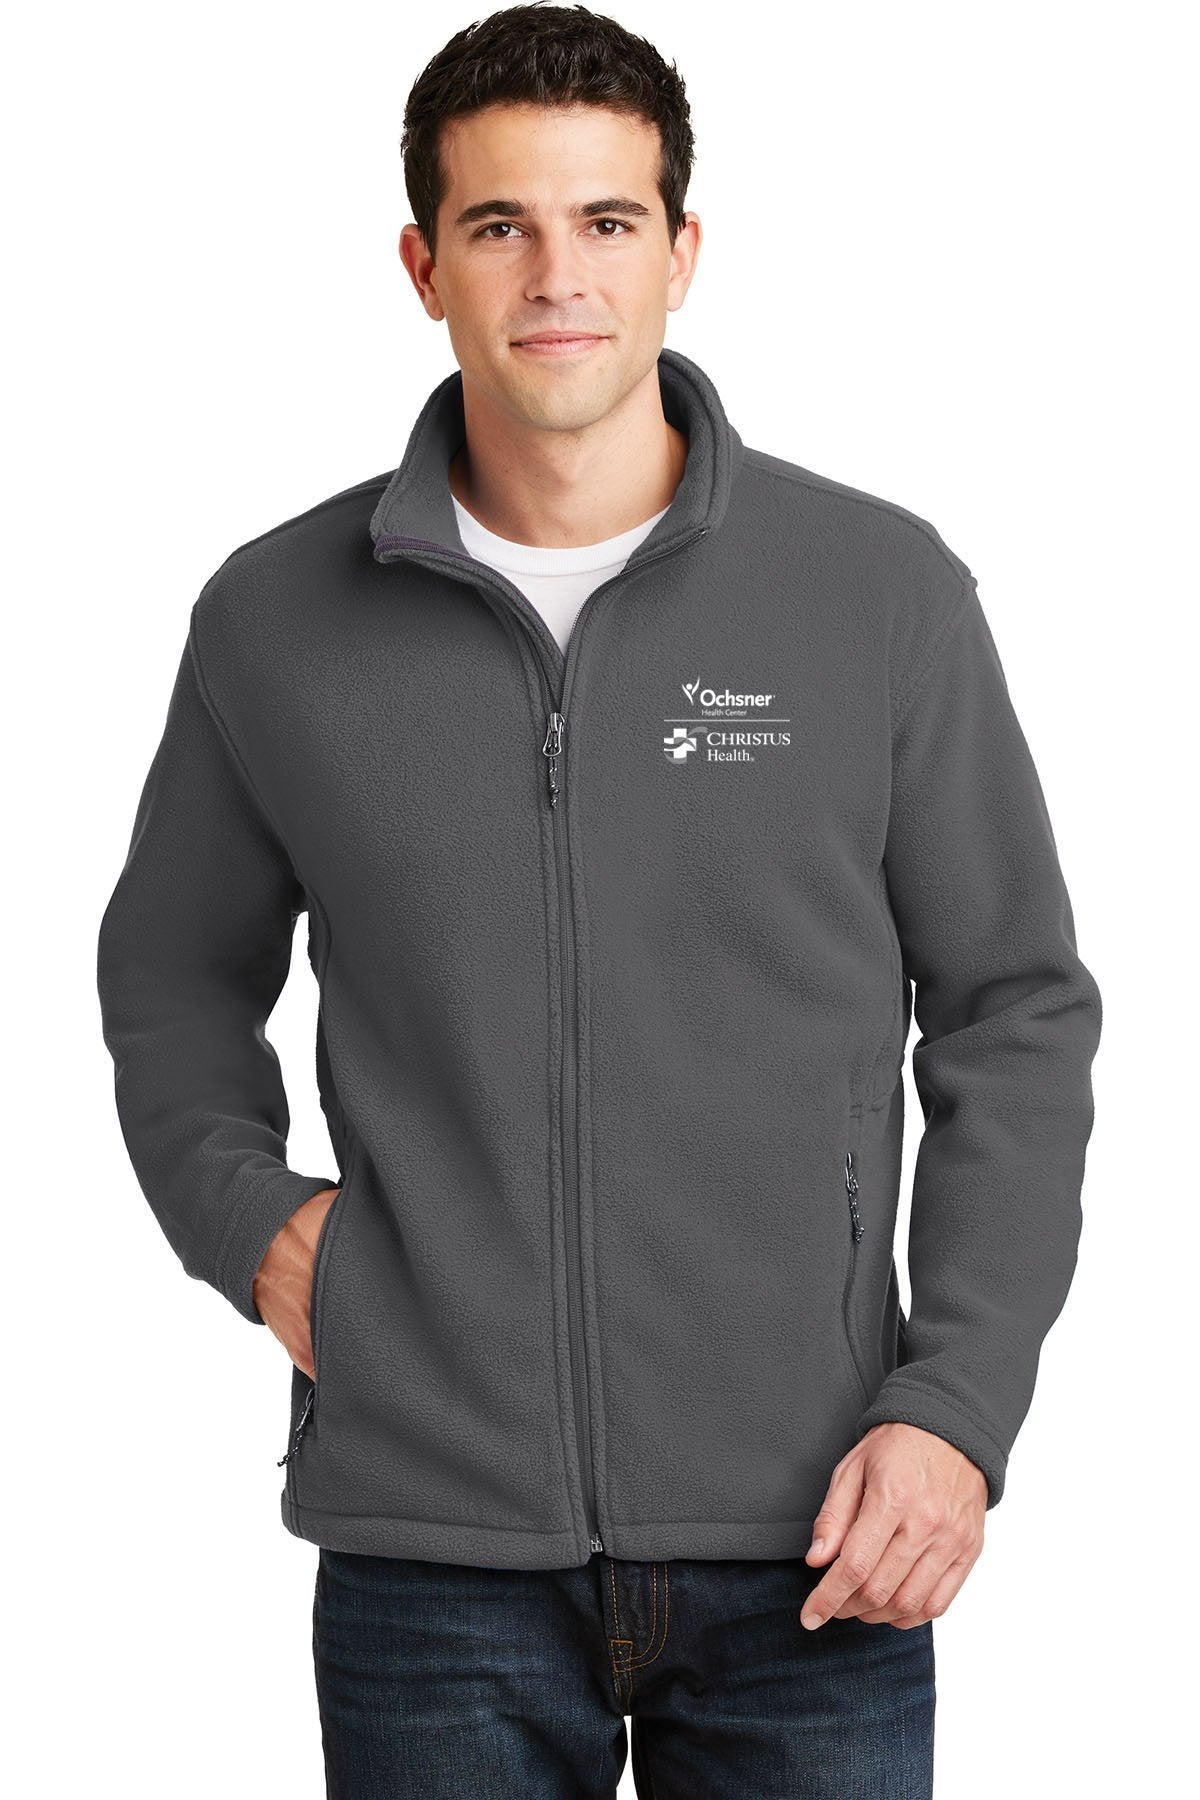 Port Authority Men's Value Fleece Ochsner Christus